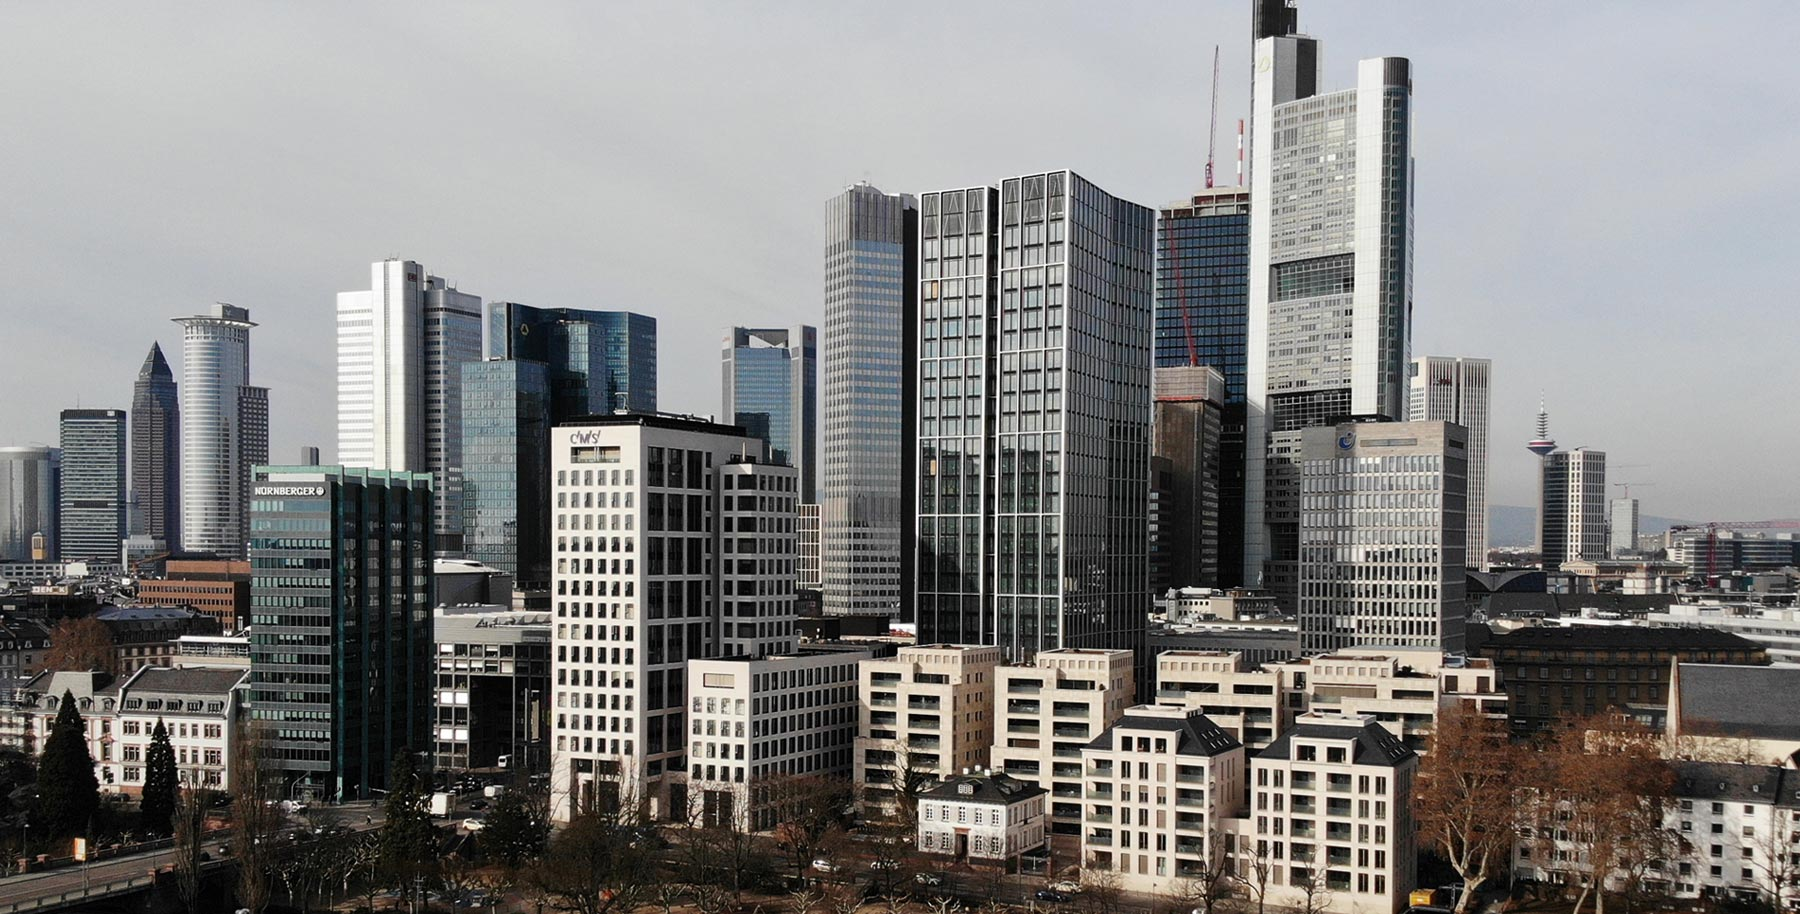 WINX Tower in Frankfurt Germany - MainTor complex - office space - skyscraper in the financial district - skyline of Frankfurt at the river shore